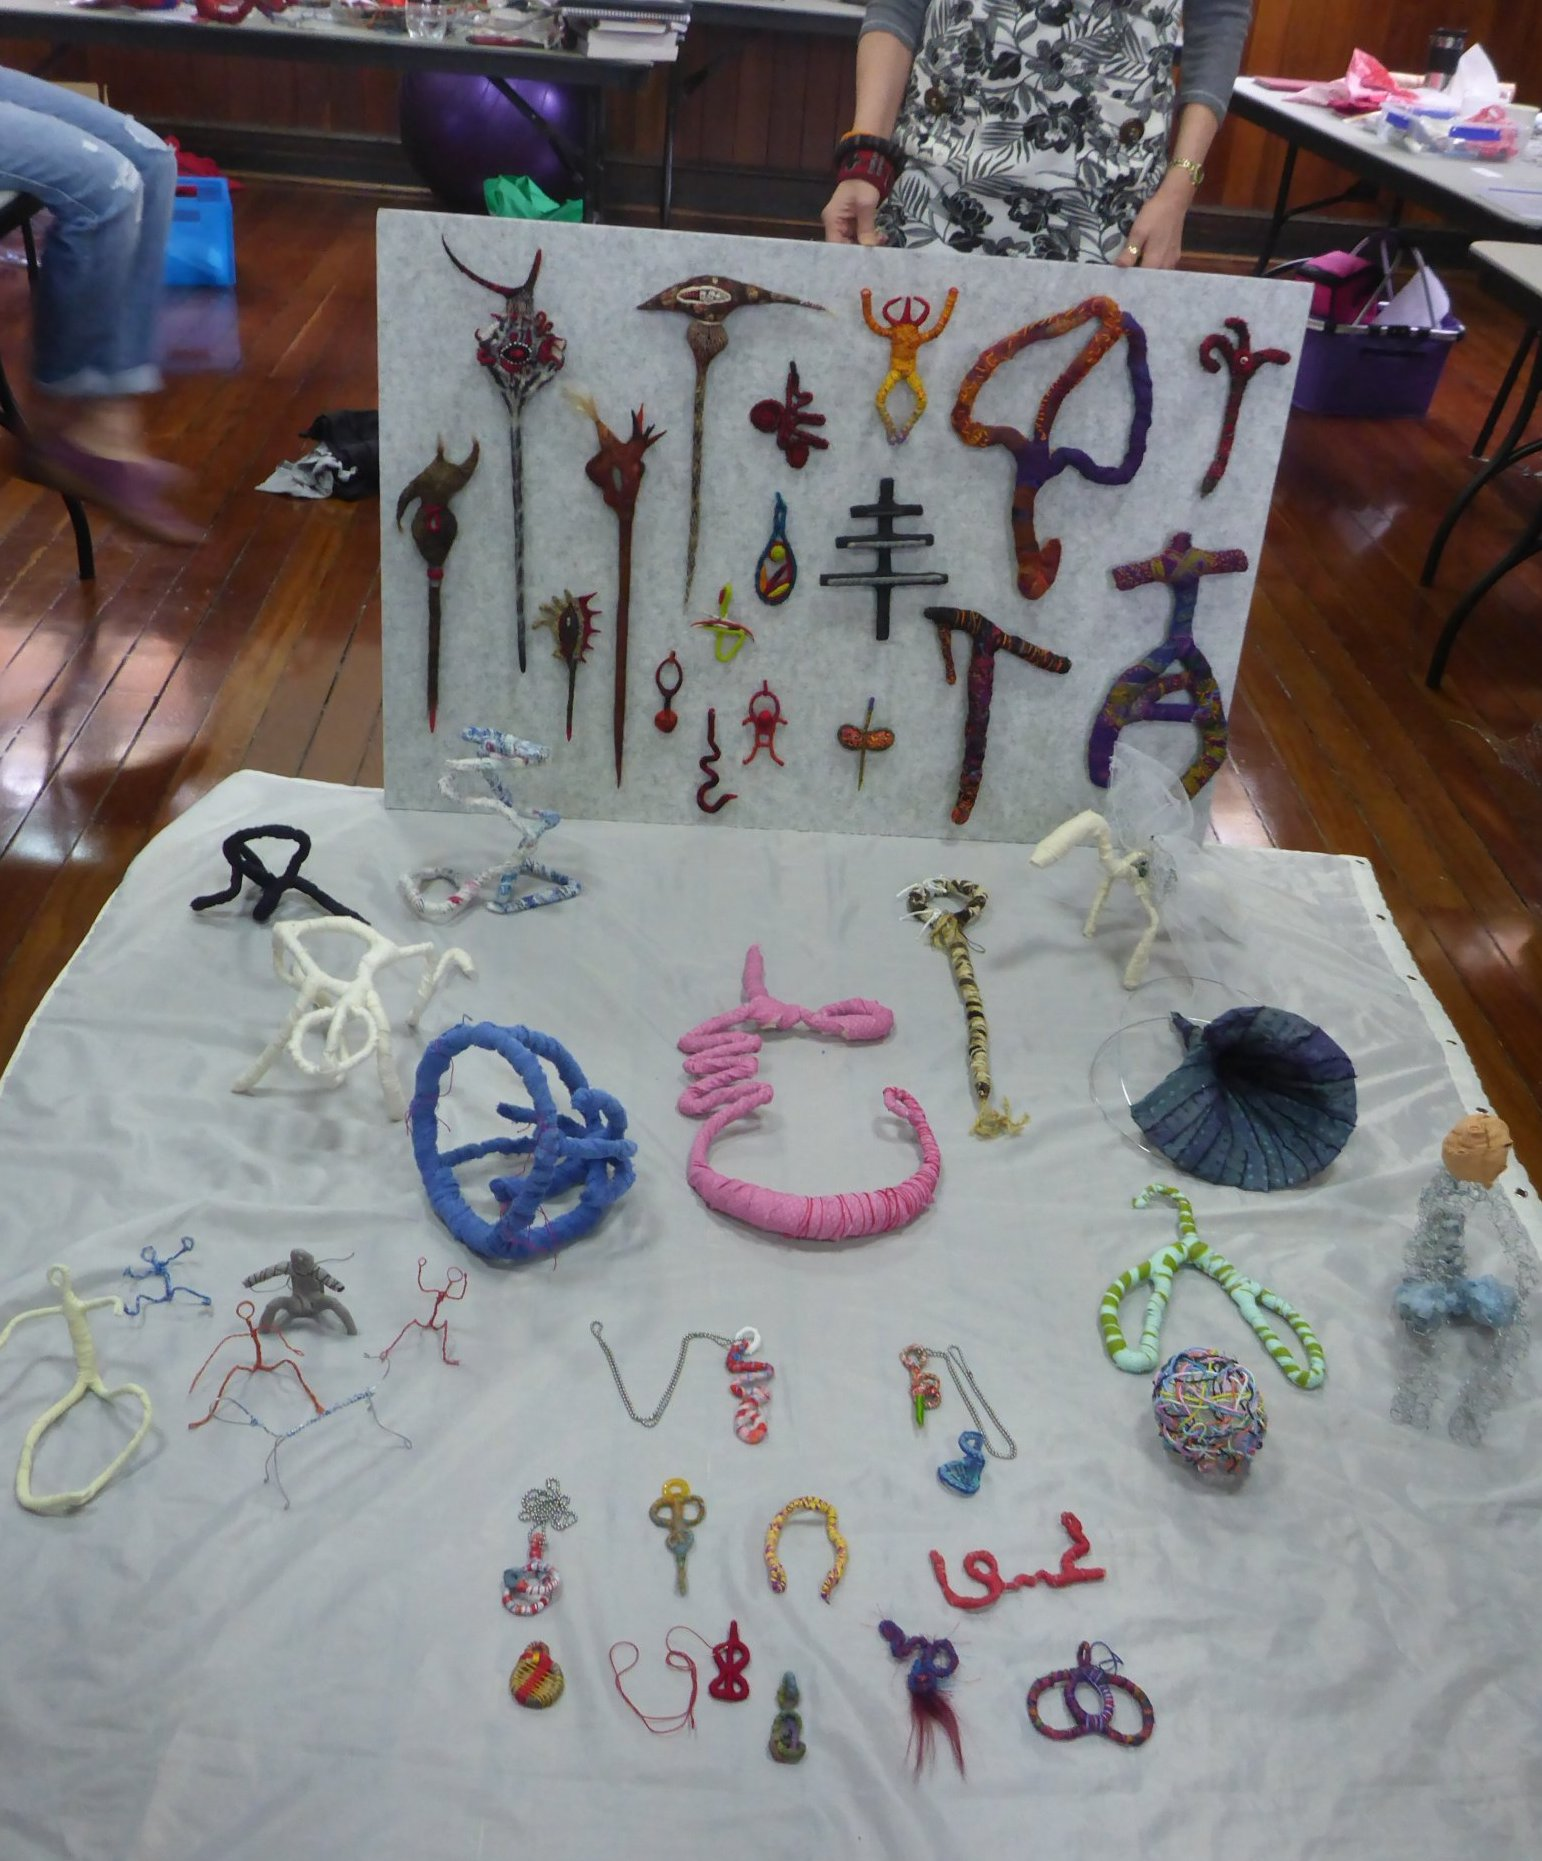 Participants' outcomes plus display board of KV's pieces at a workshop on textiles and wire armatures for  WAFTA